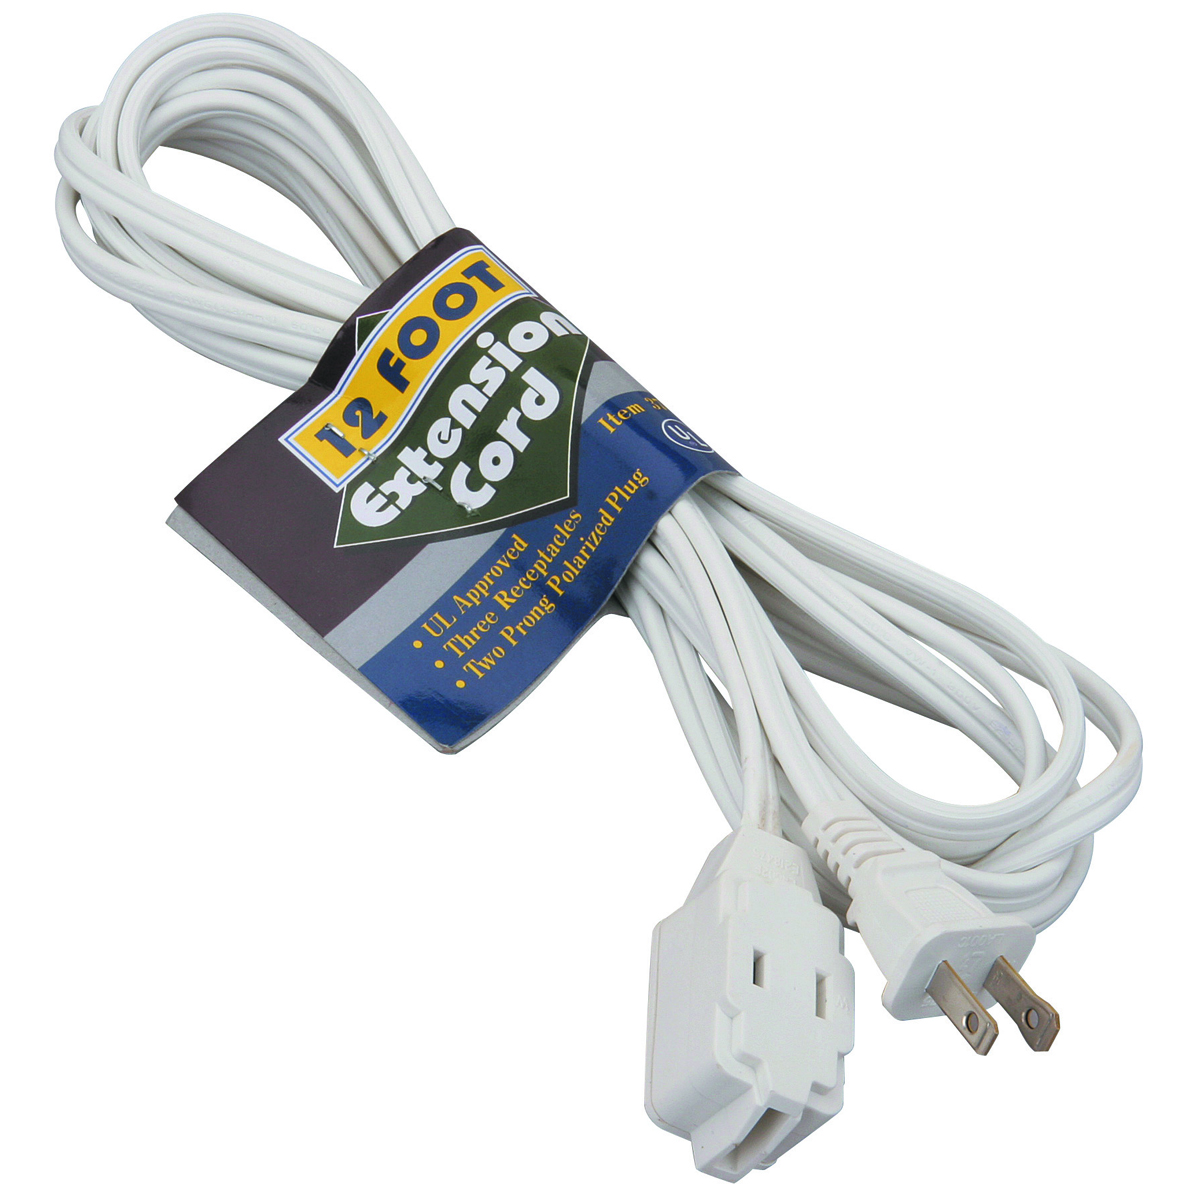 12 Ft. X 16 Gauge Indoor Extension Cord